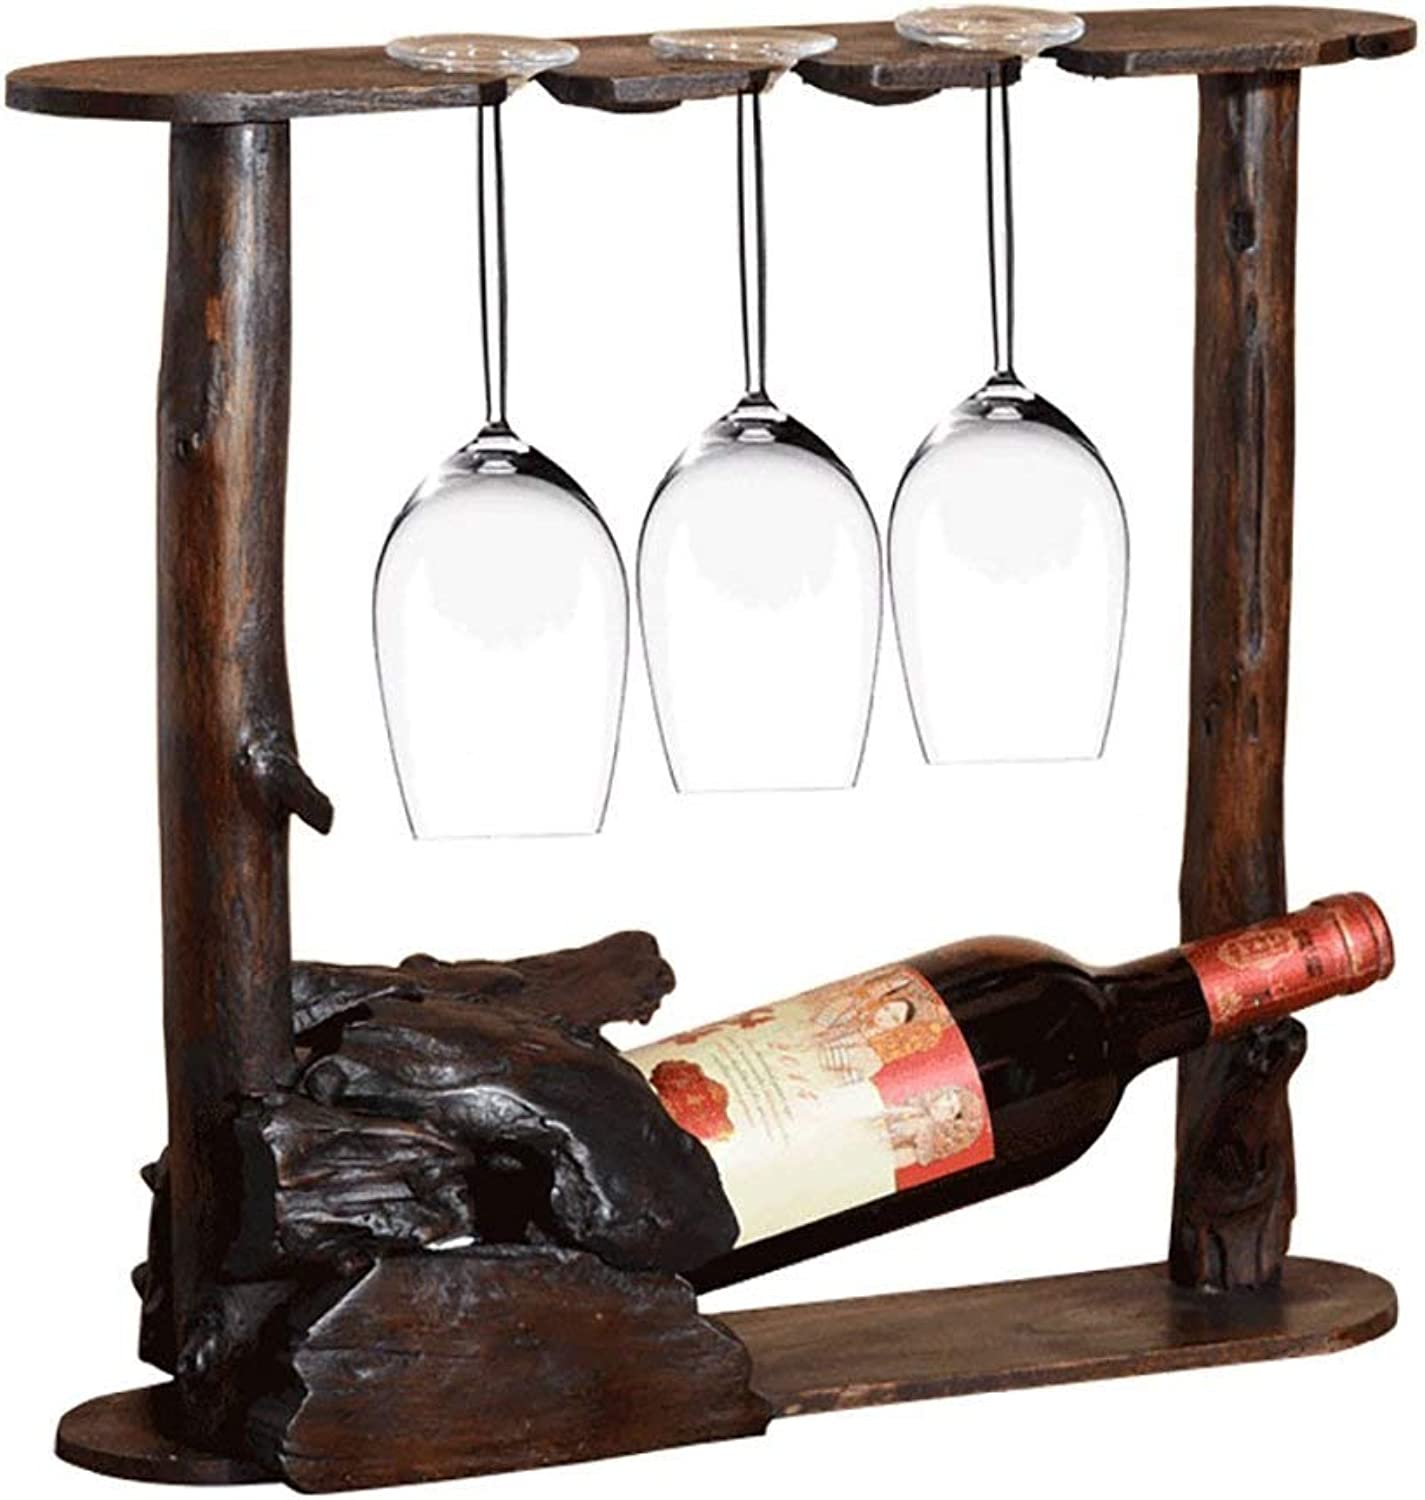 A-Lncie Wine Shelf with Glass Holder  37  42cm - Wooden Bottle Stand with Space for 1 Bottles & 3 Glasses Hanging Wooden Shelf As Bottle Holder